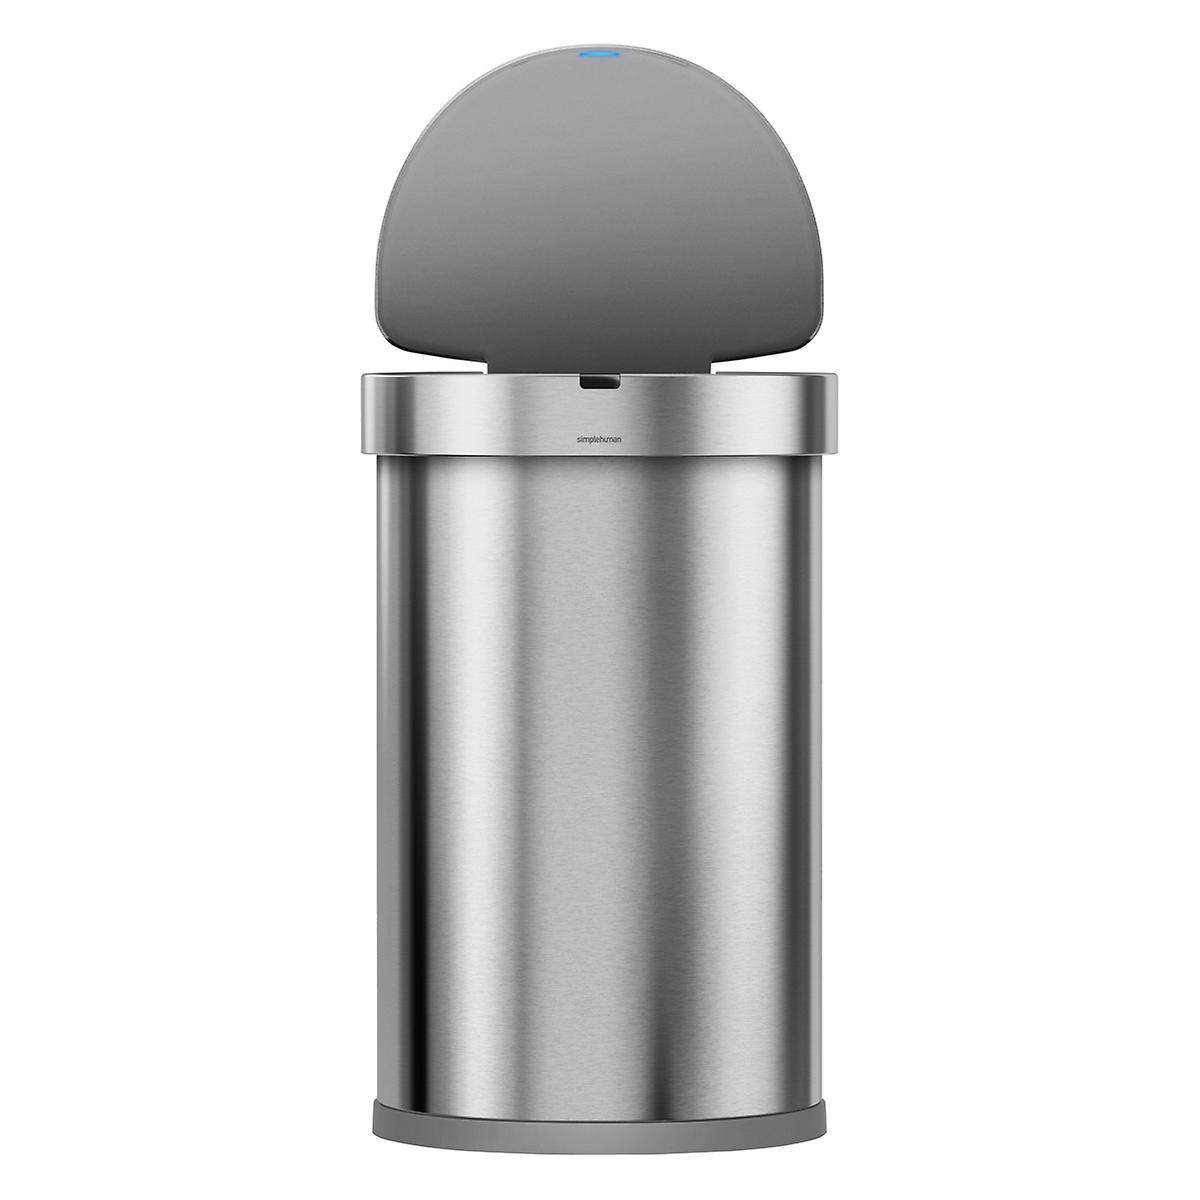 simplehuman stainless steel 12 gal semi round sensor trash can the container store. Black Bedroom Furniture Sets. Home Design Ideas